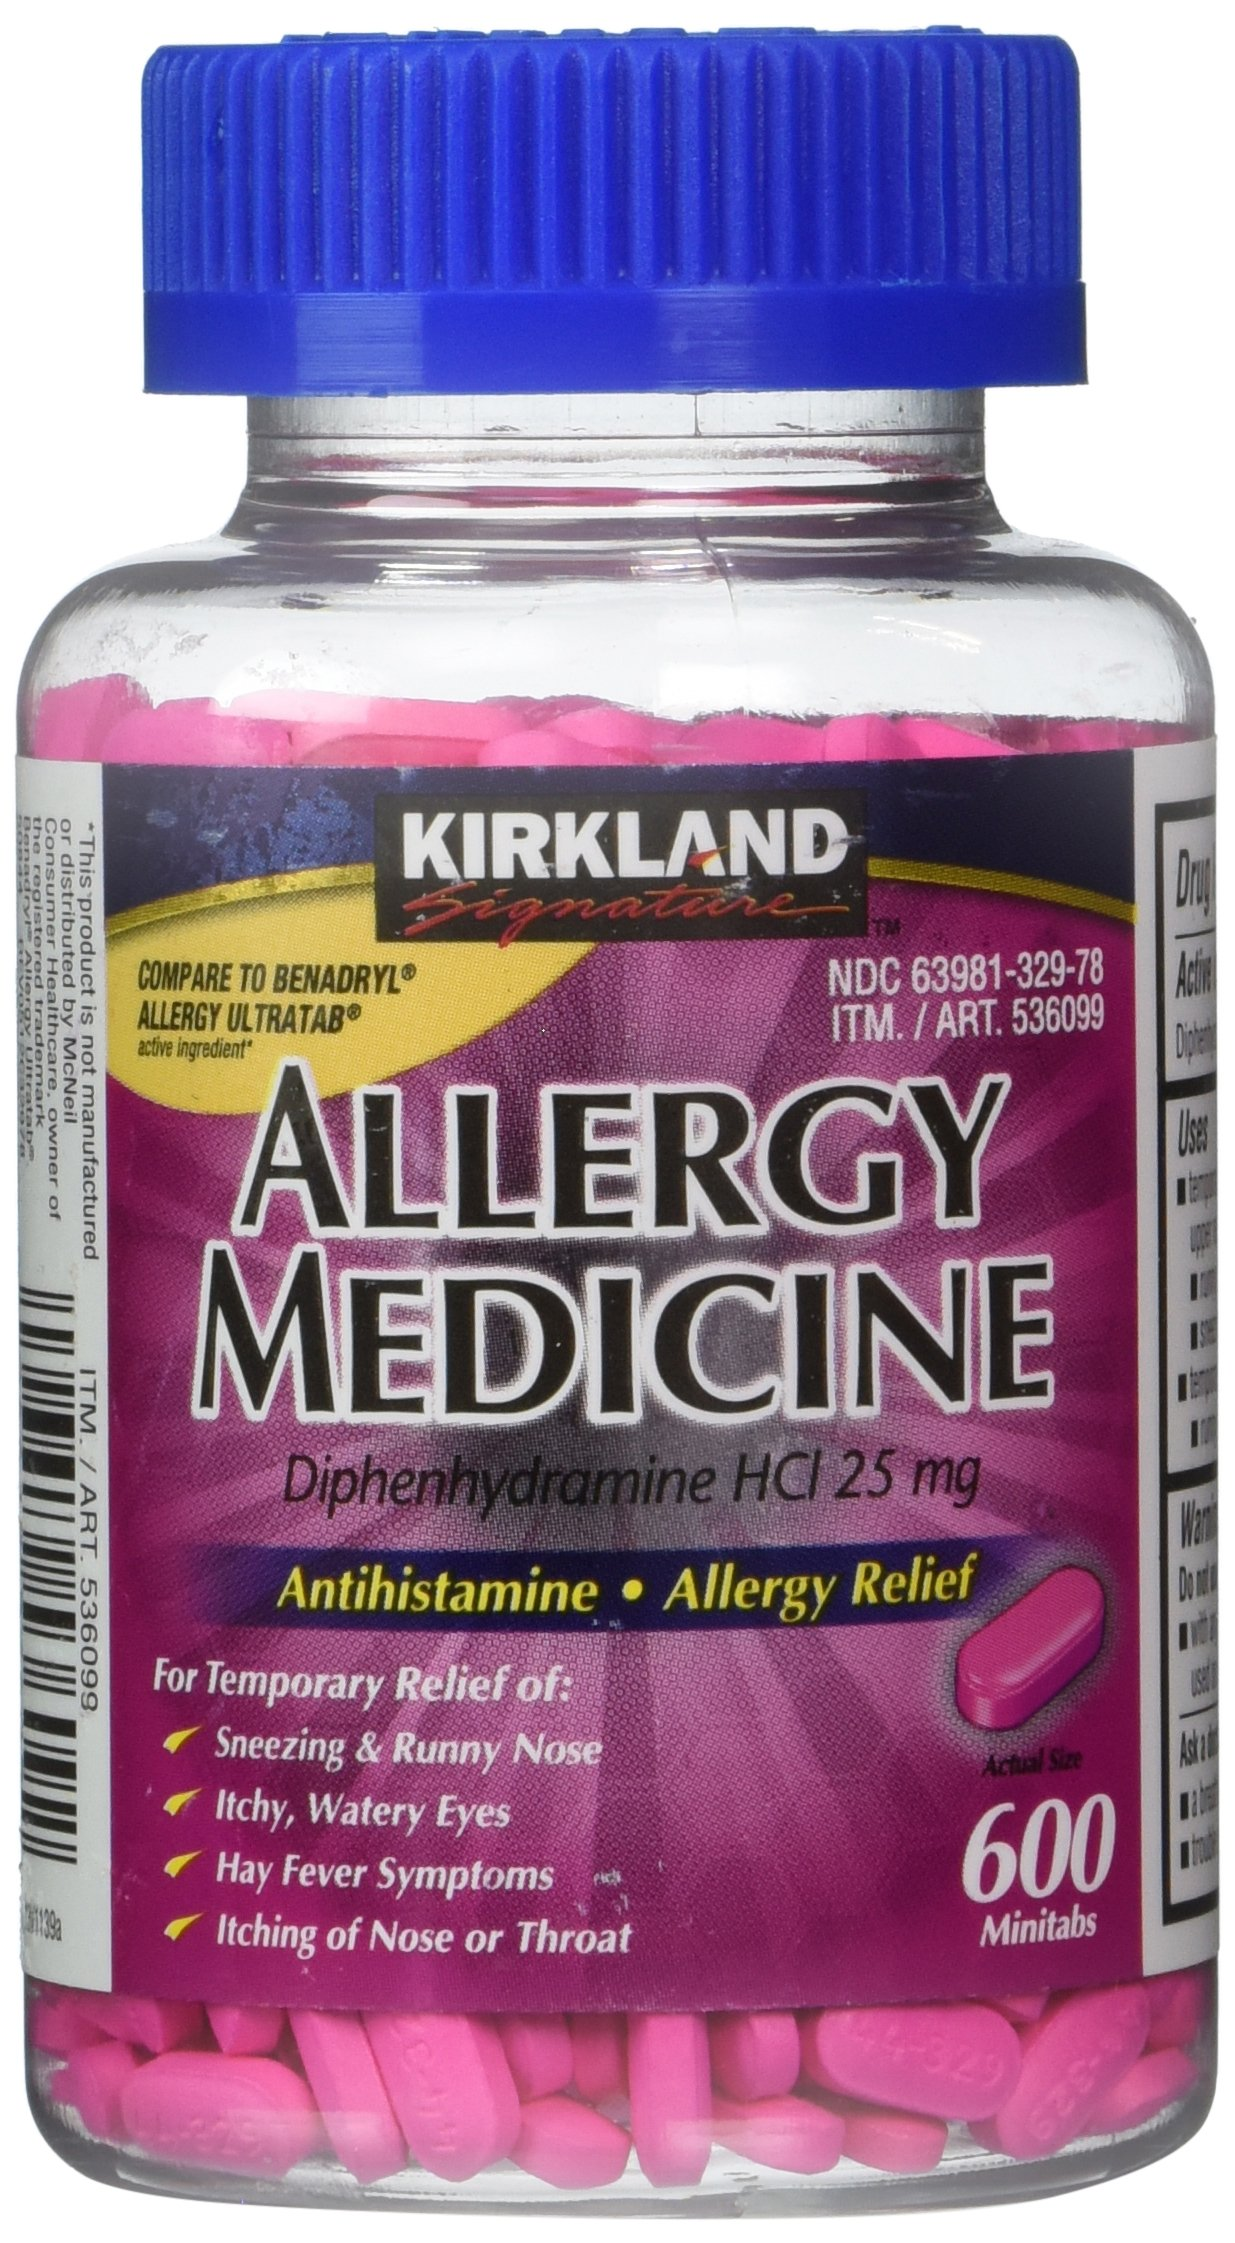 Kirkland Brand, Diphenhydramine HCI 25 Mg, (600 Count)-Allergy Medicine and AntihistamineCompare to Active Ingredient of Benadryl Allergy Generic